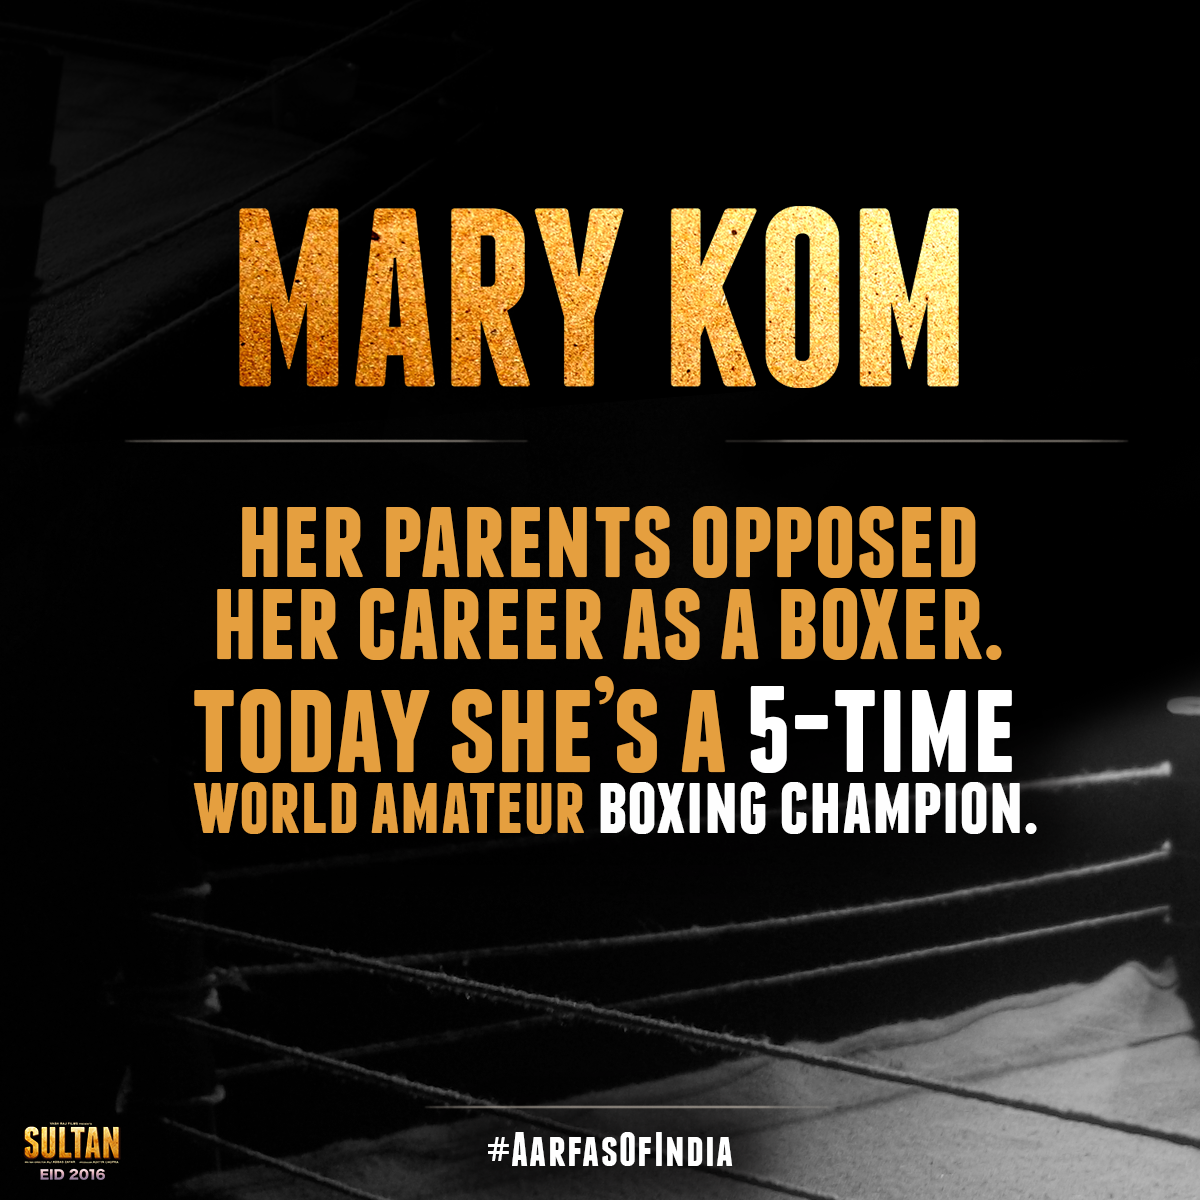 Mary kom 3.png